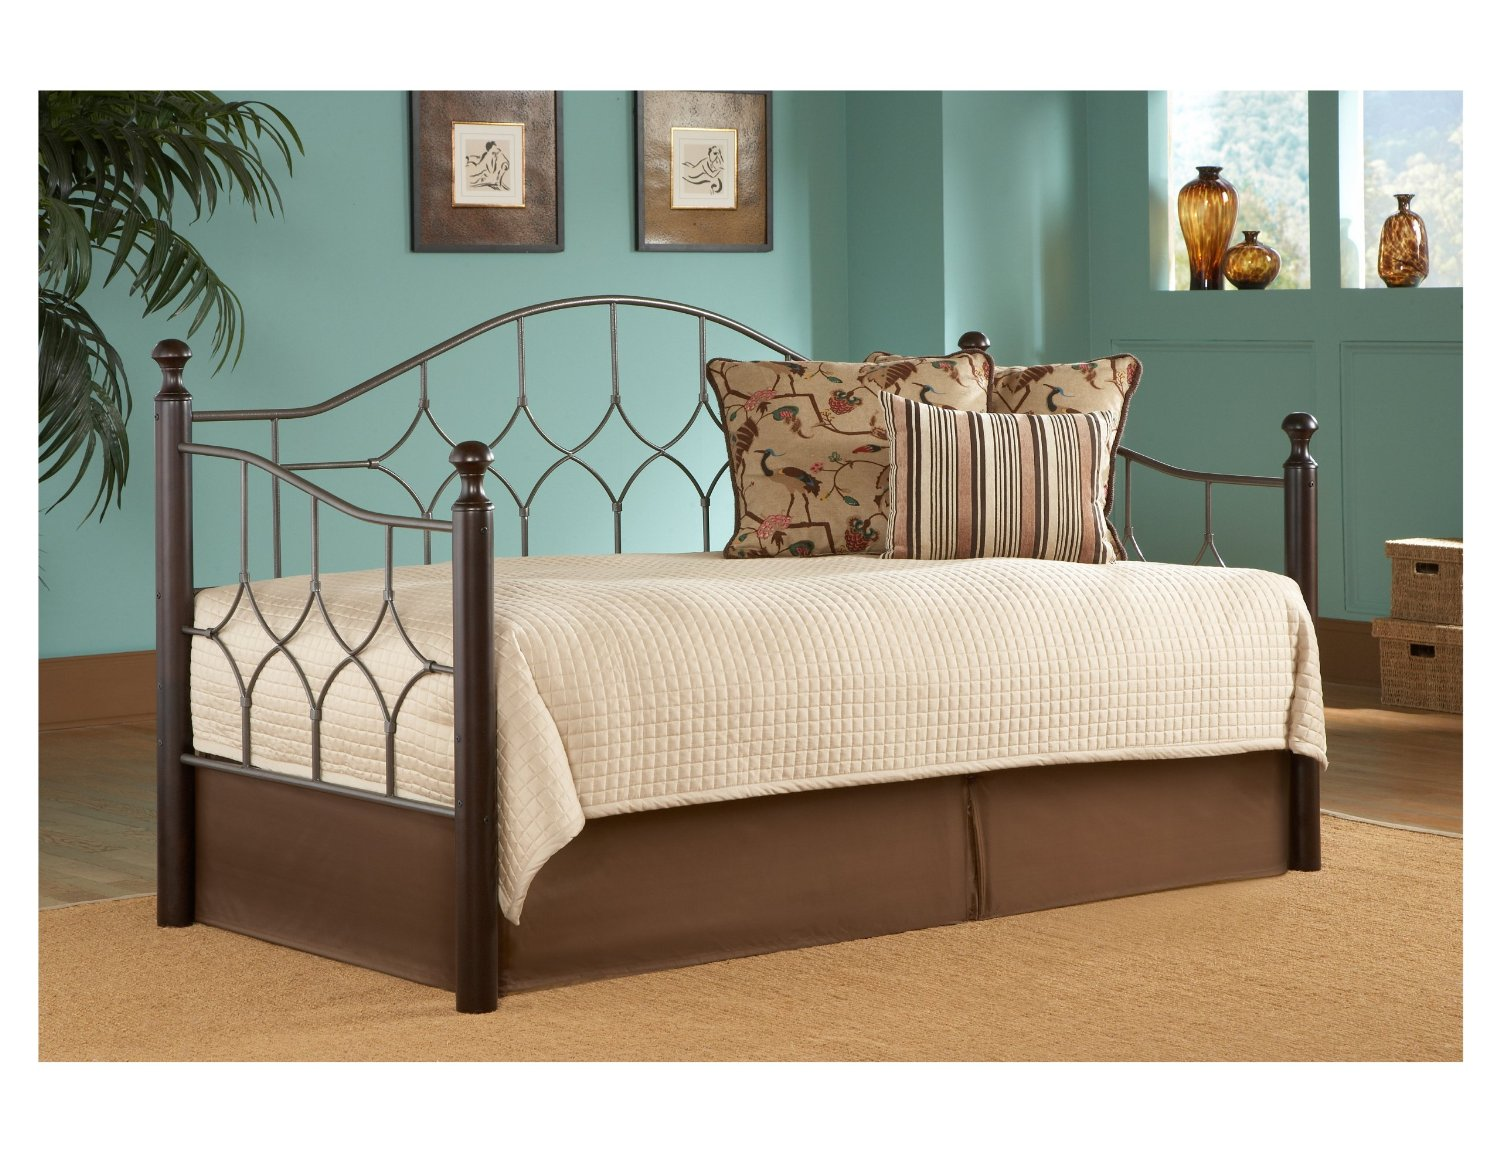 Queen Size Daybed Frame Furniture With Huge Flexibility And Function Homesfeed